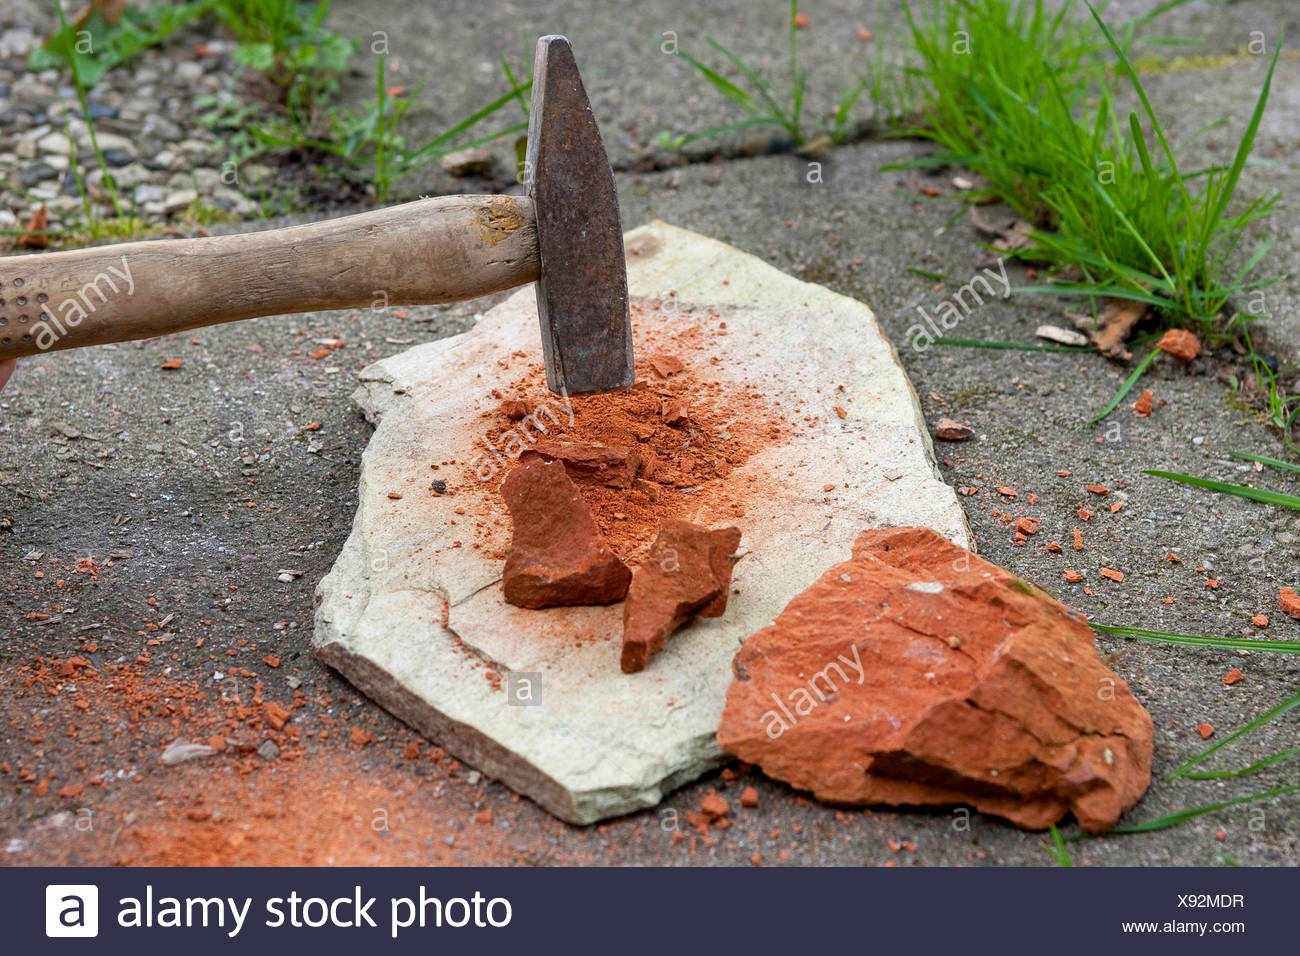 crushing a red sandstone with a hammer to paint with earth colour, Germany - Stock Image